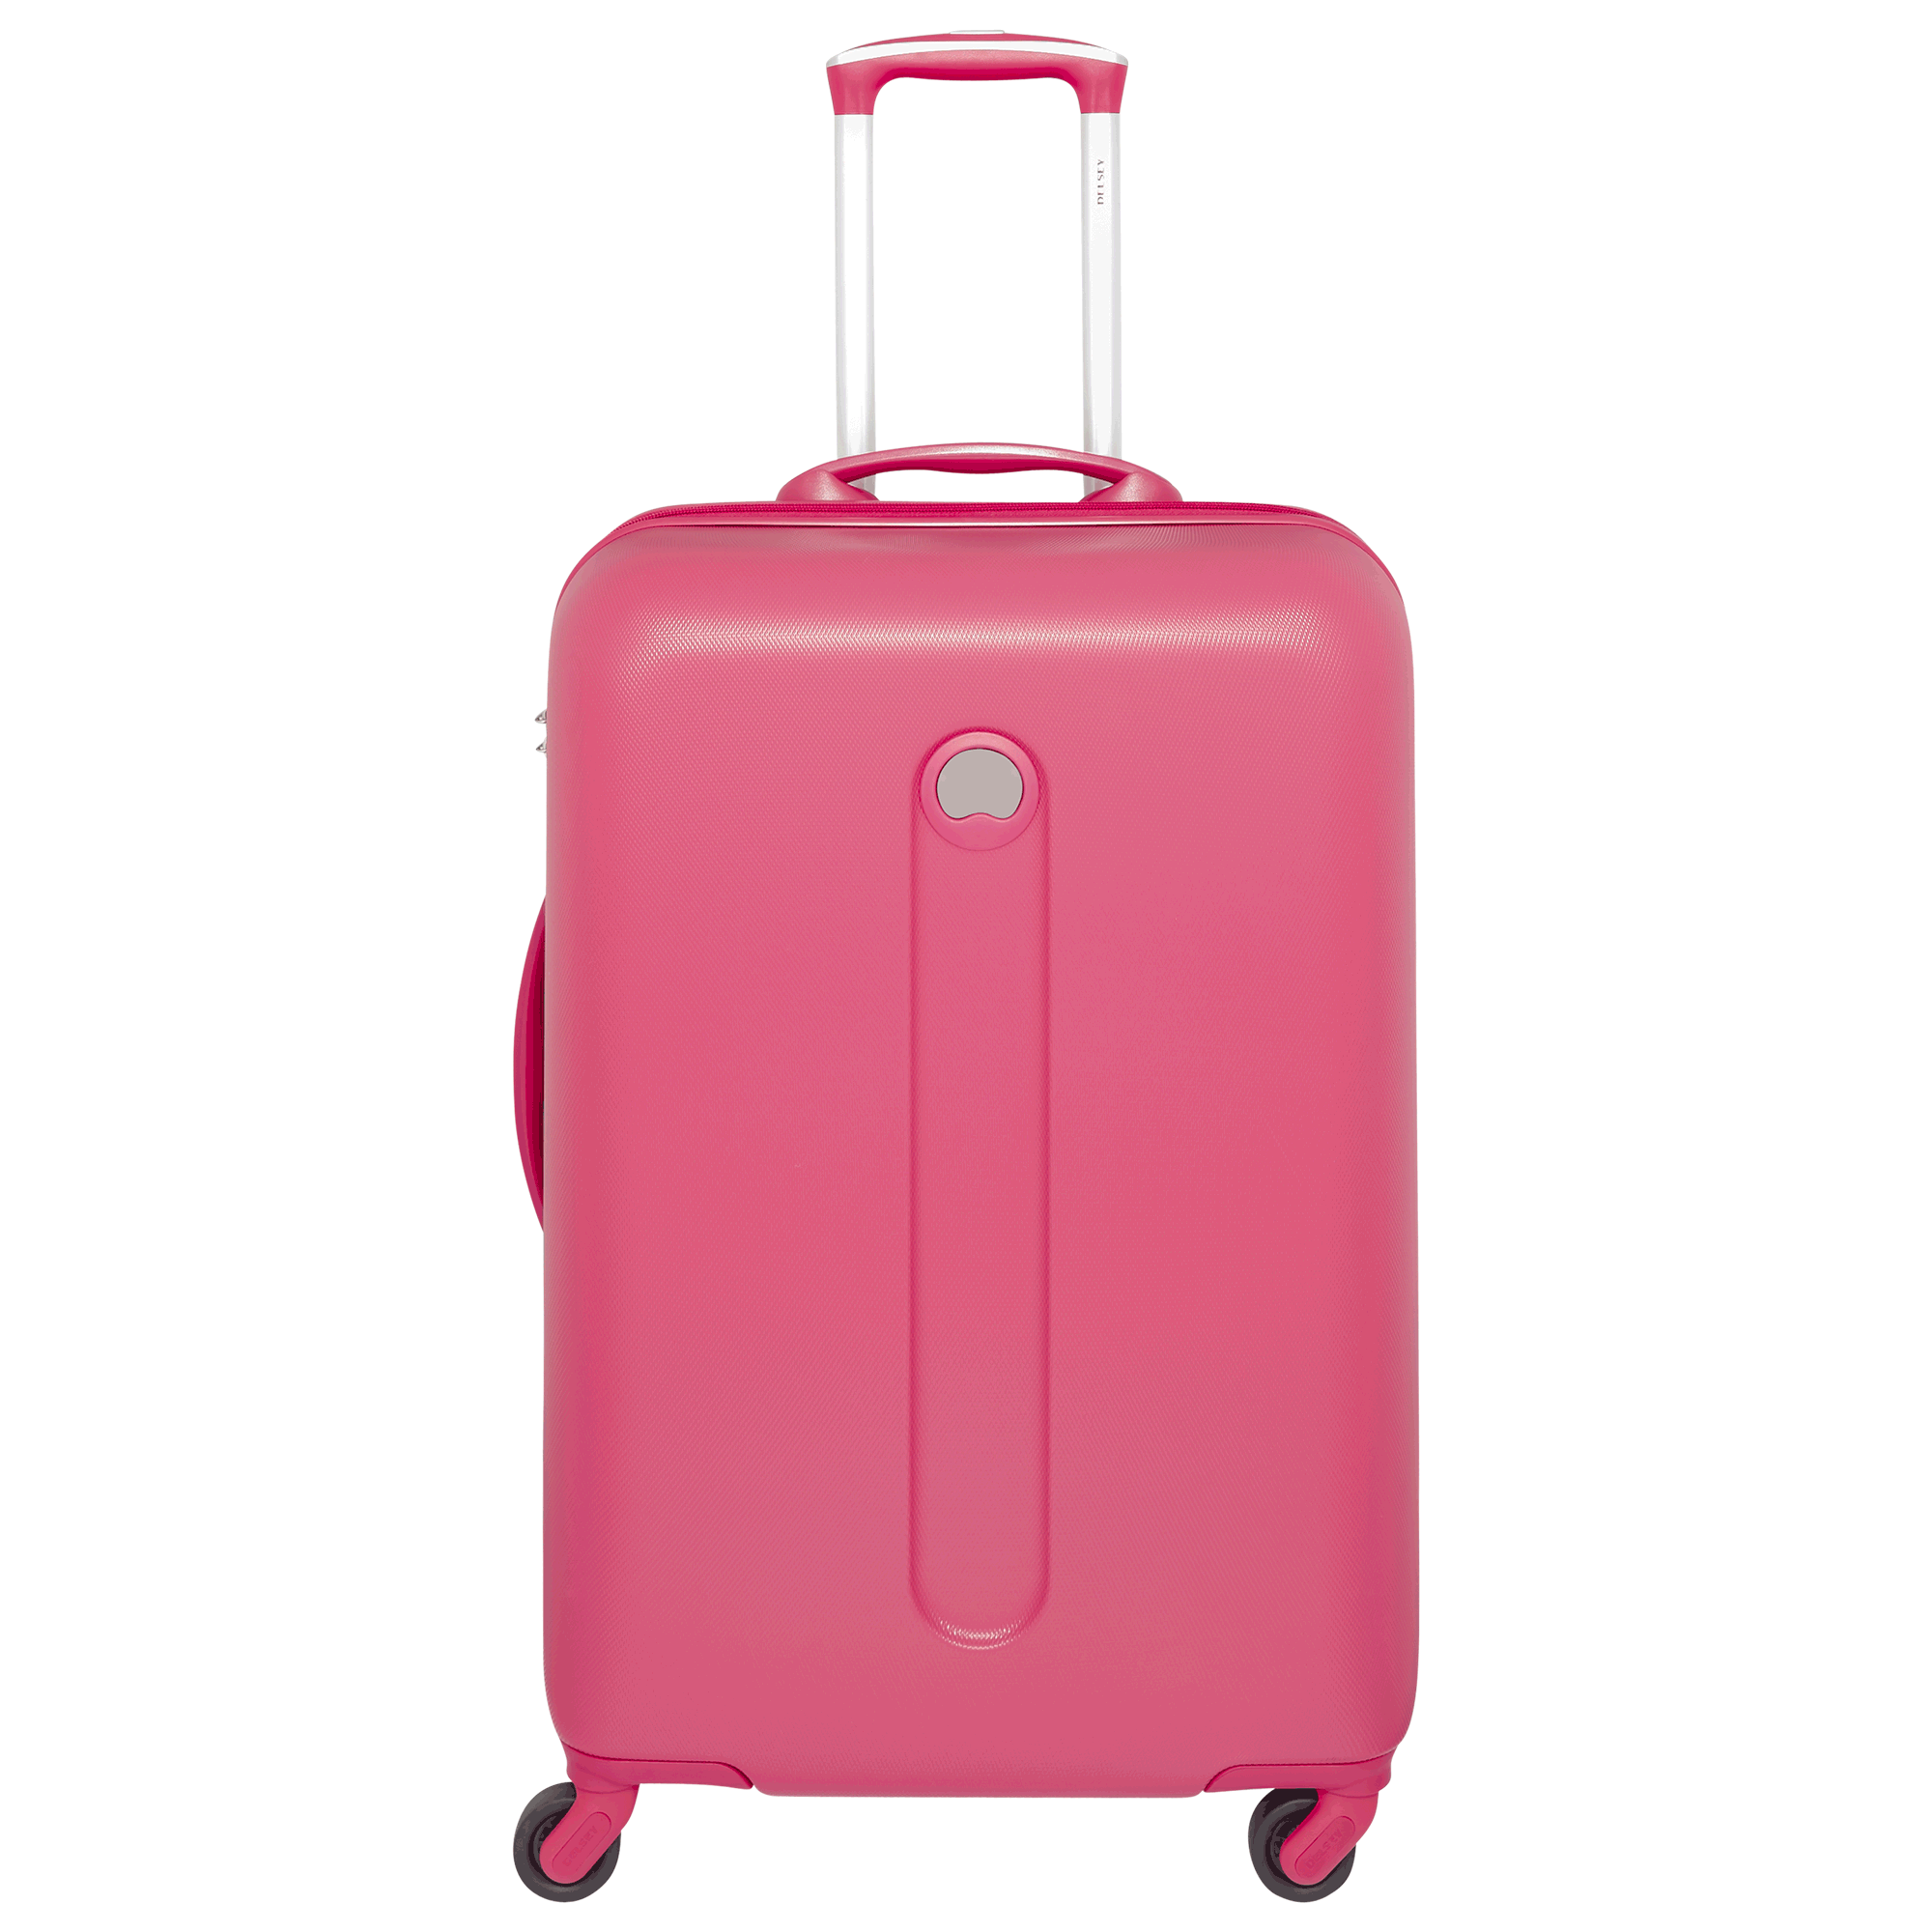 DELSEY #luggage #gift #Valentine's Day #pink | viajes | Pinterest